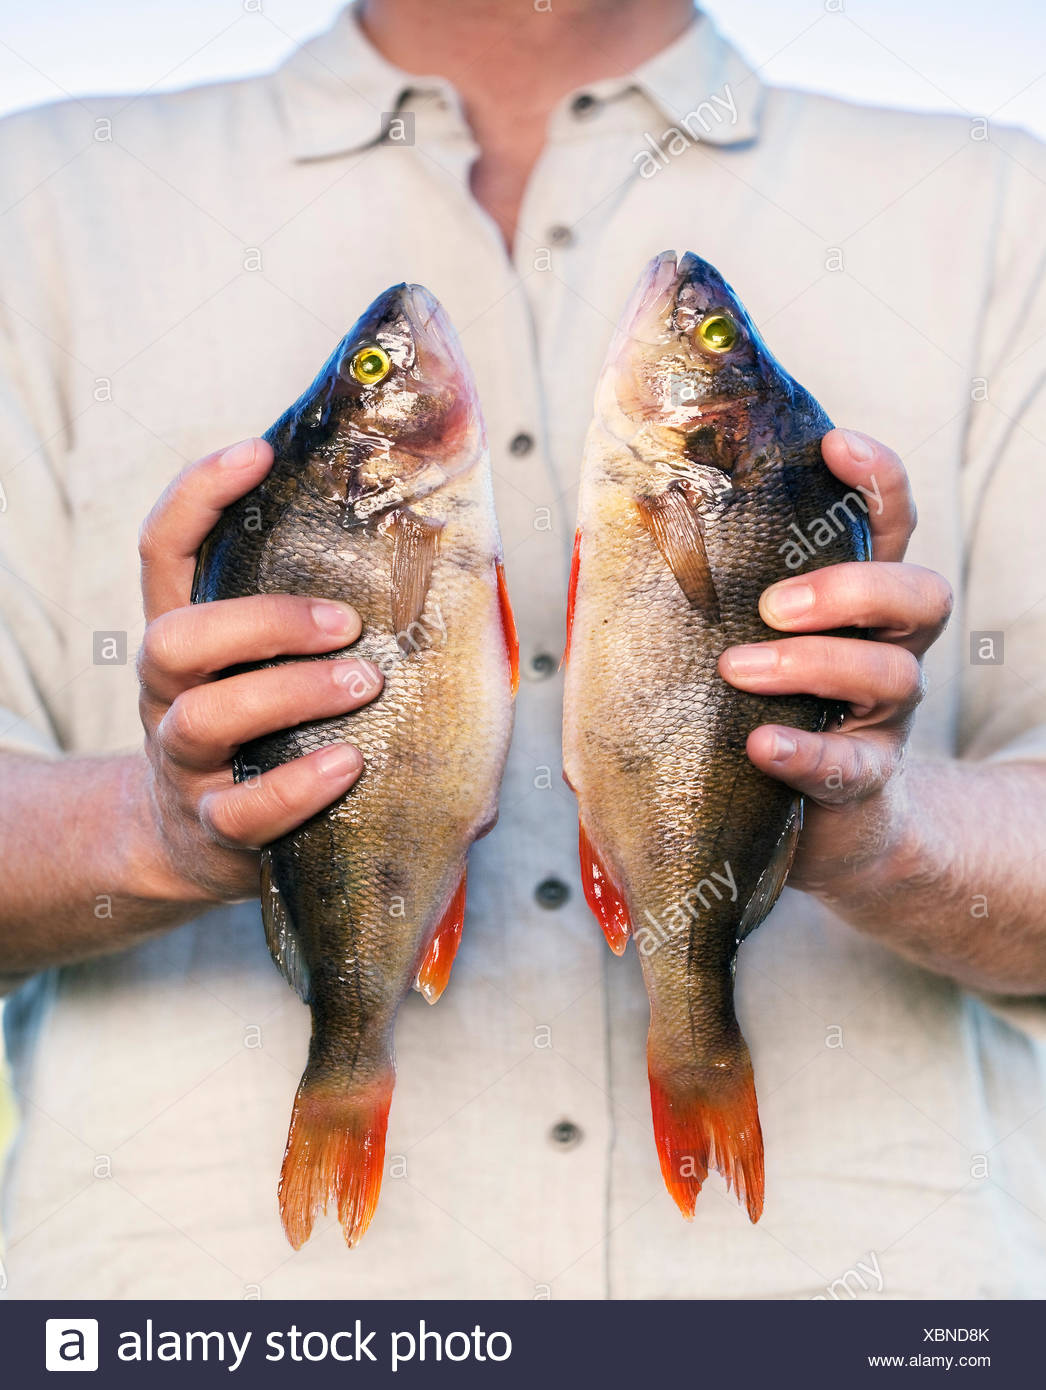 Man holding pair of fresh fish - Stock Image